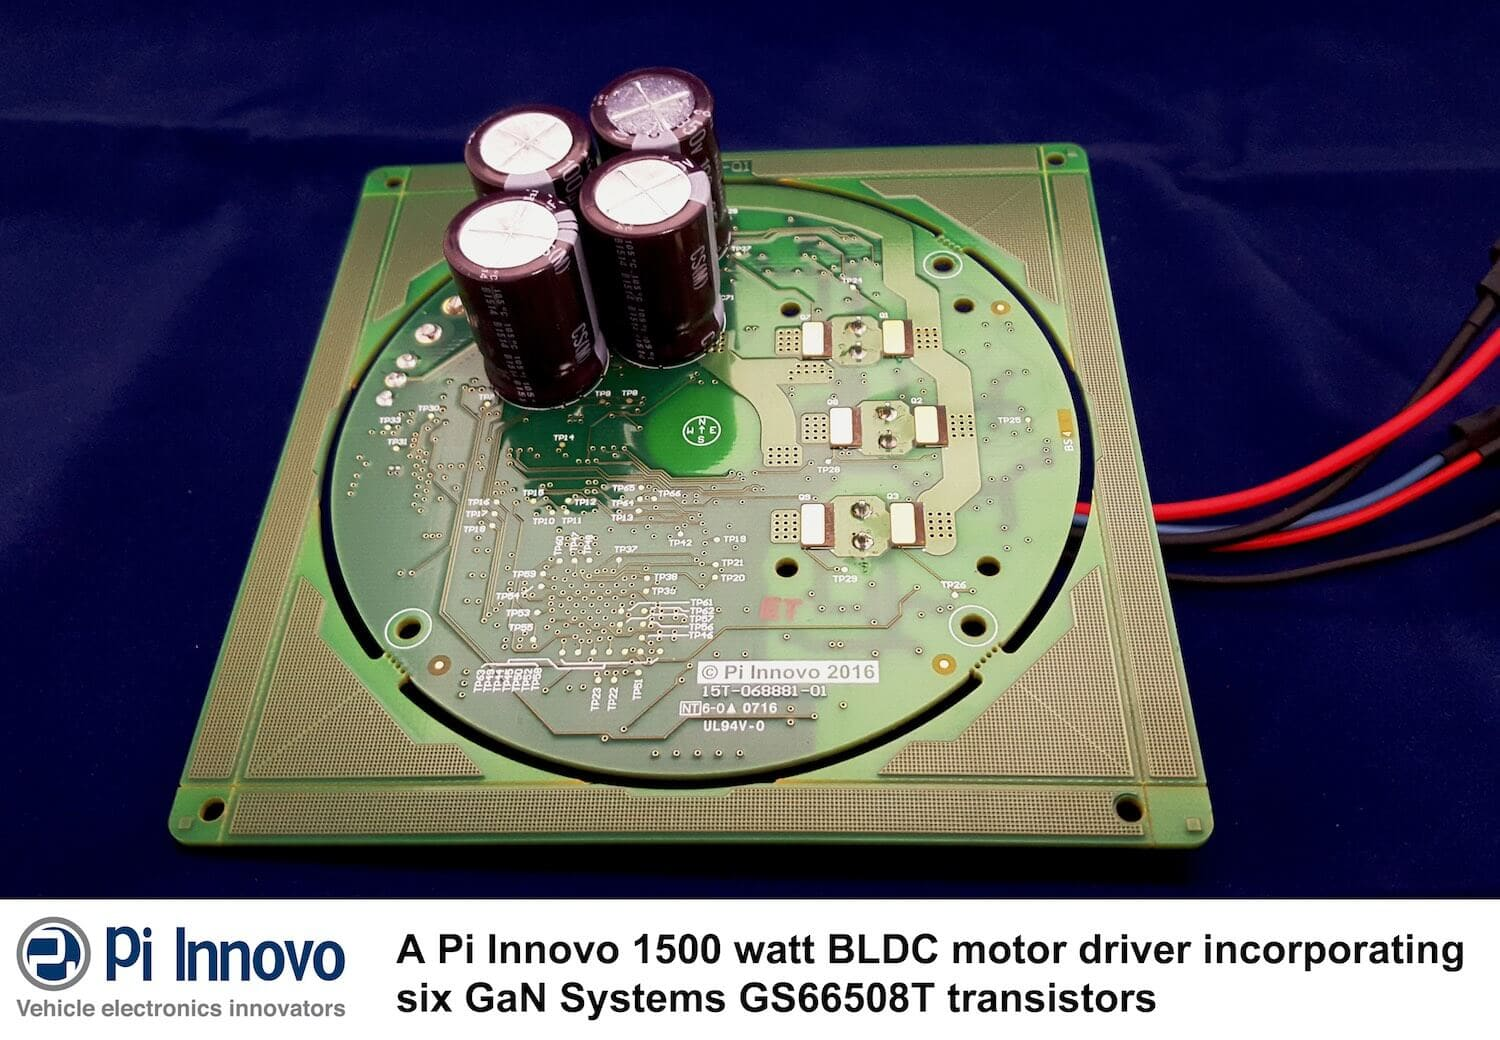 PI Innovo GaN Systems motor drive for electric vehicle